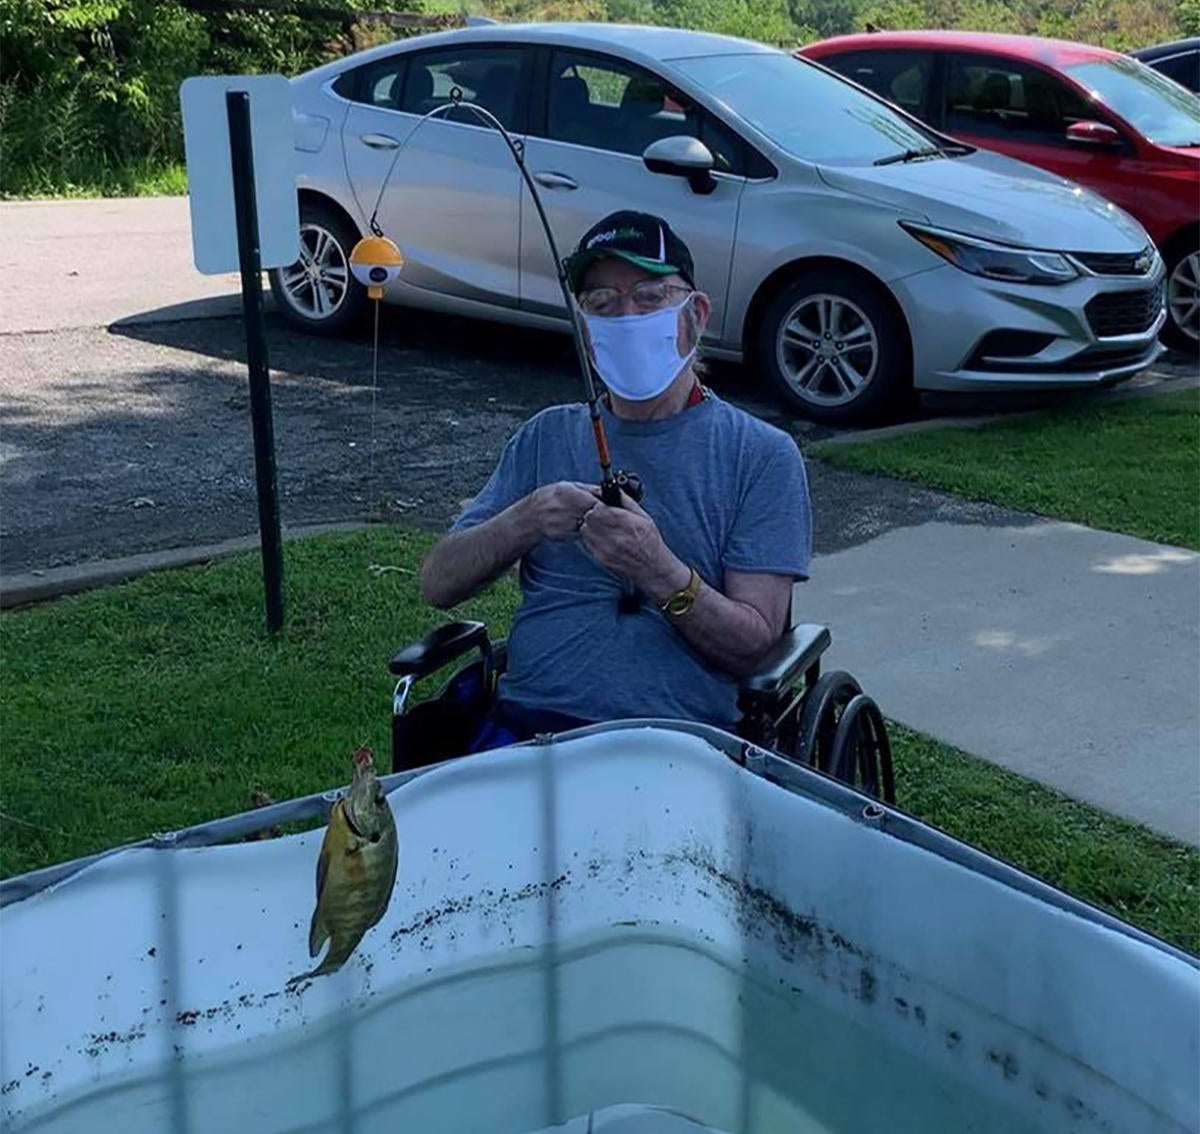 nursing-home-fishing-2.jpg